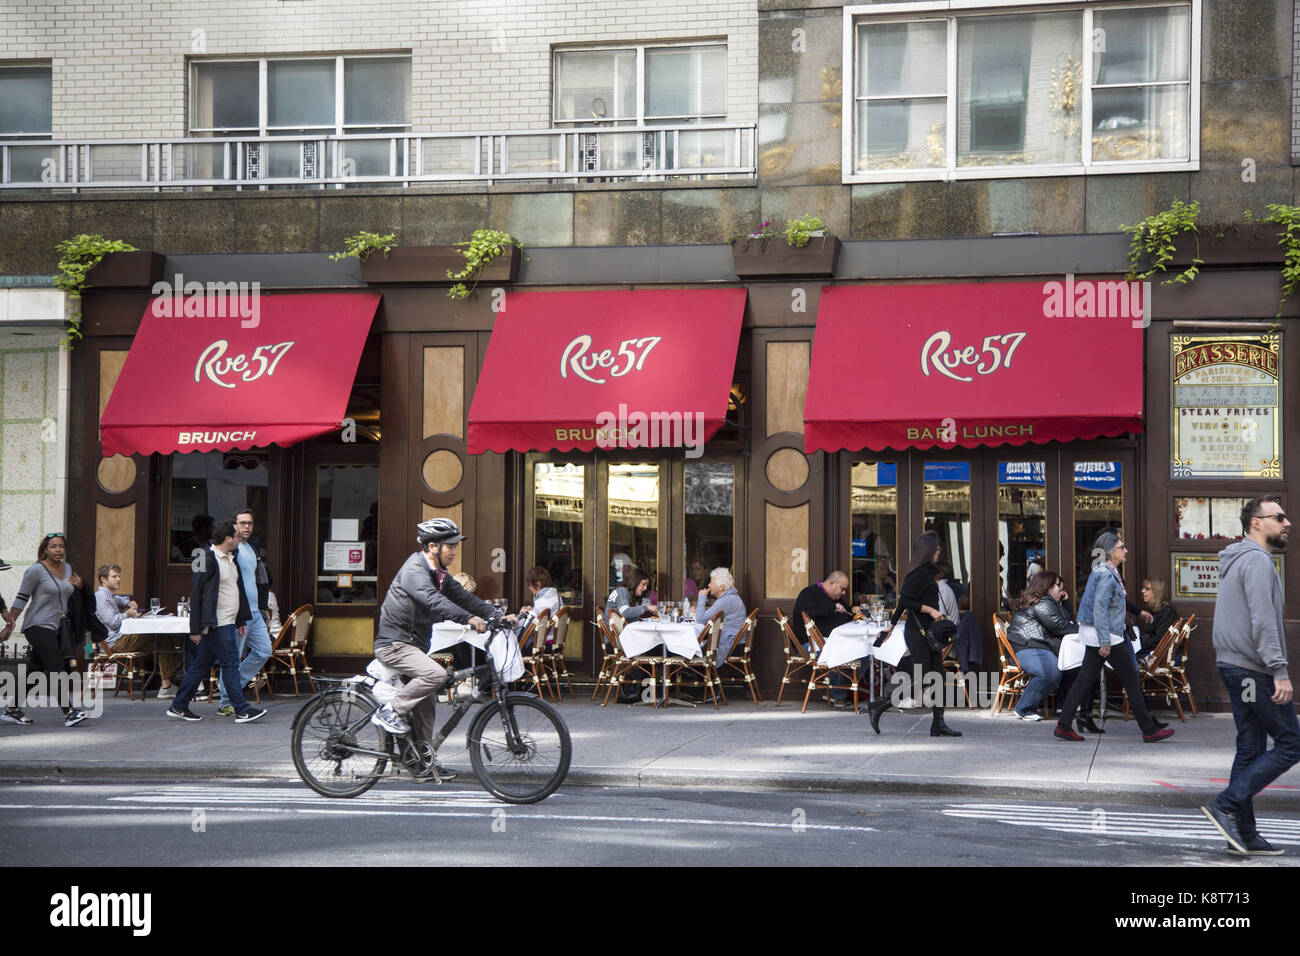 People have brunch on the sidewalk as pedestrians pass by at Rue 57 on 57th Street and Sixth Avenue in midtown Manhattan, - Stock Image